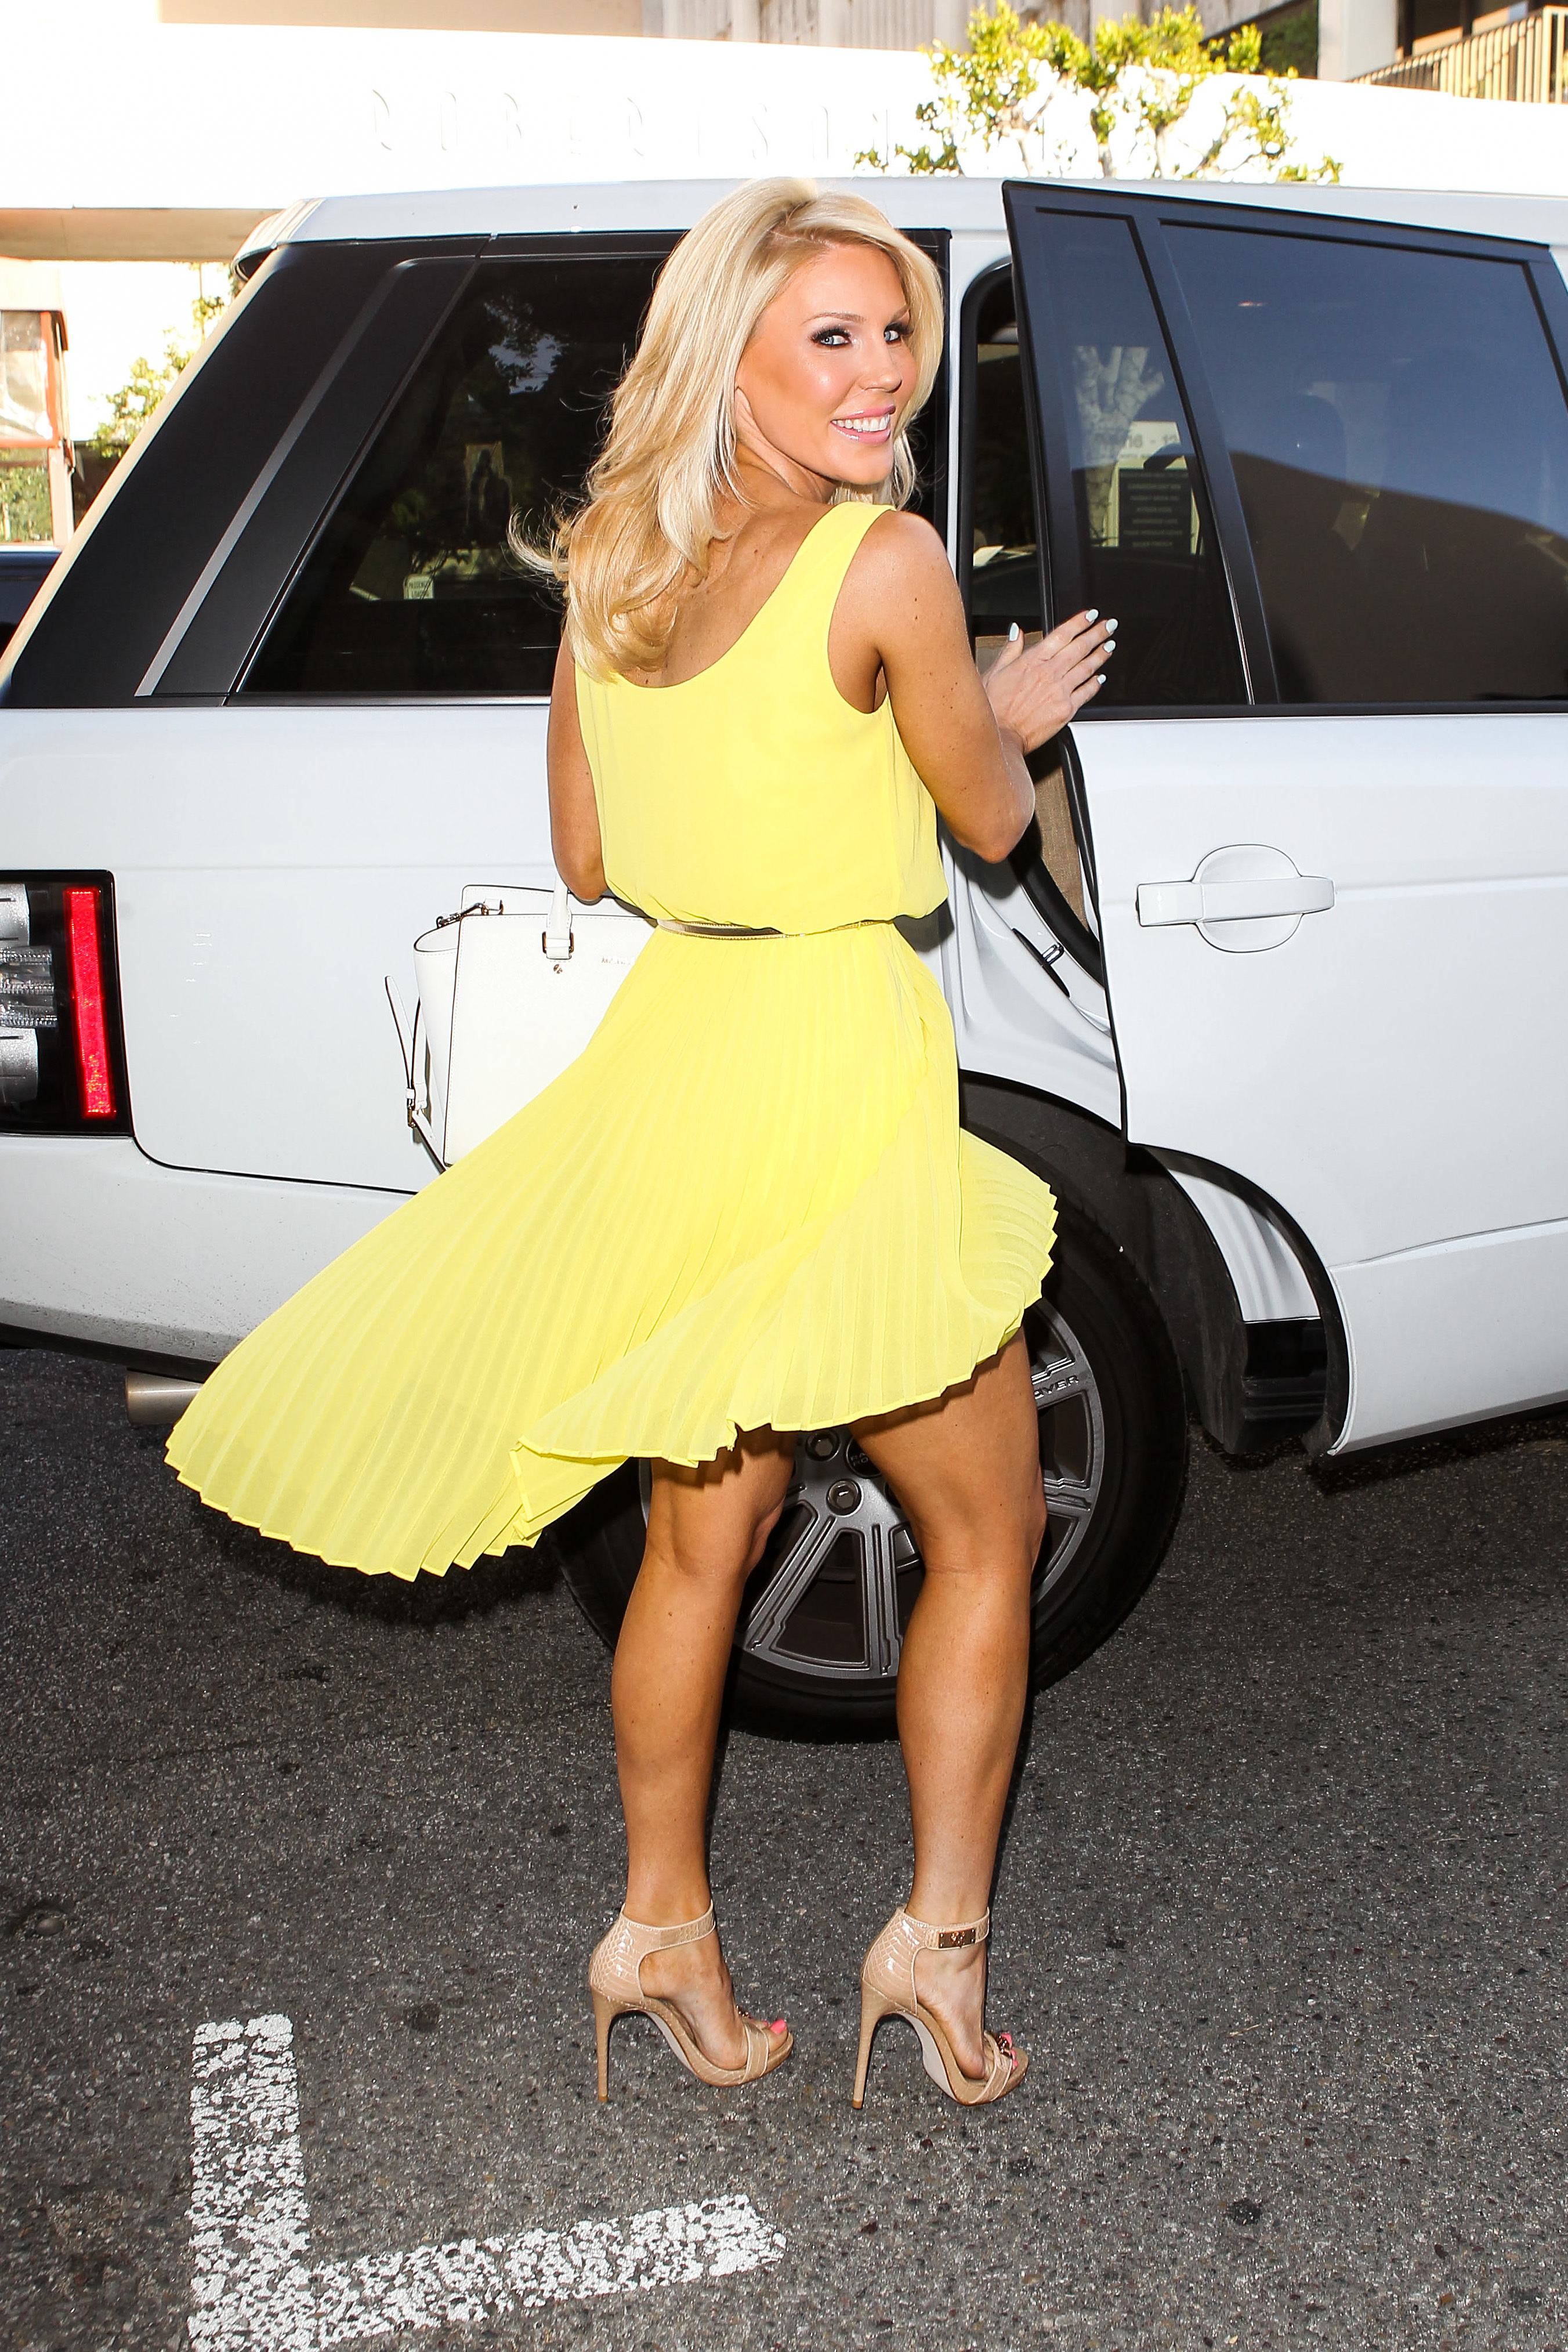 Gretchen Rossi hot